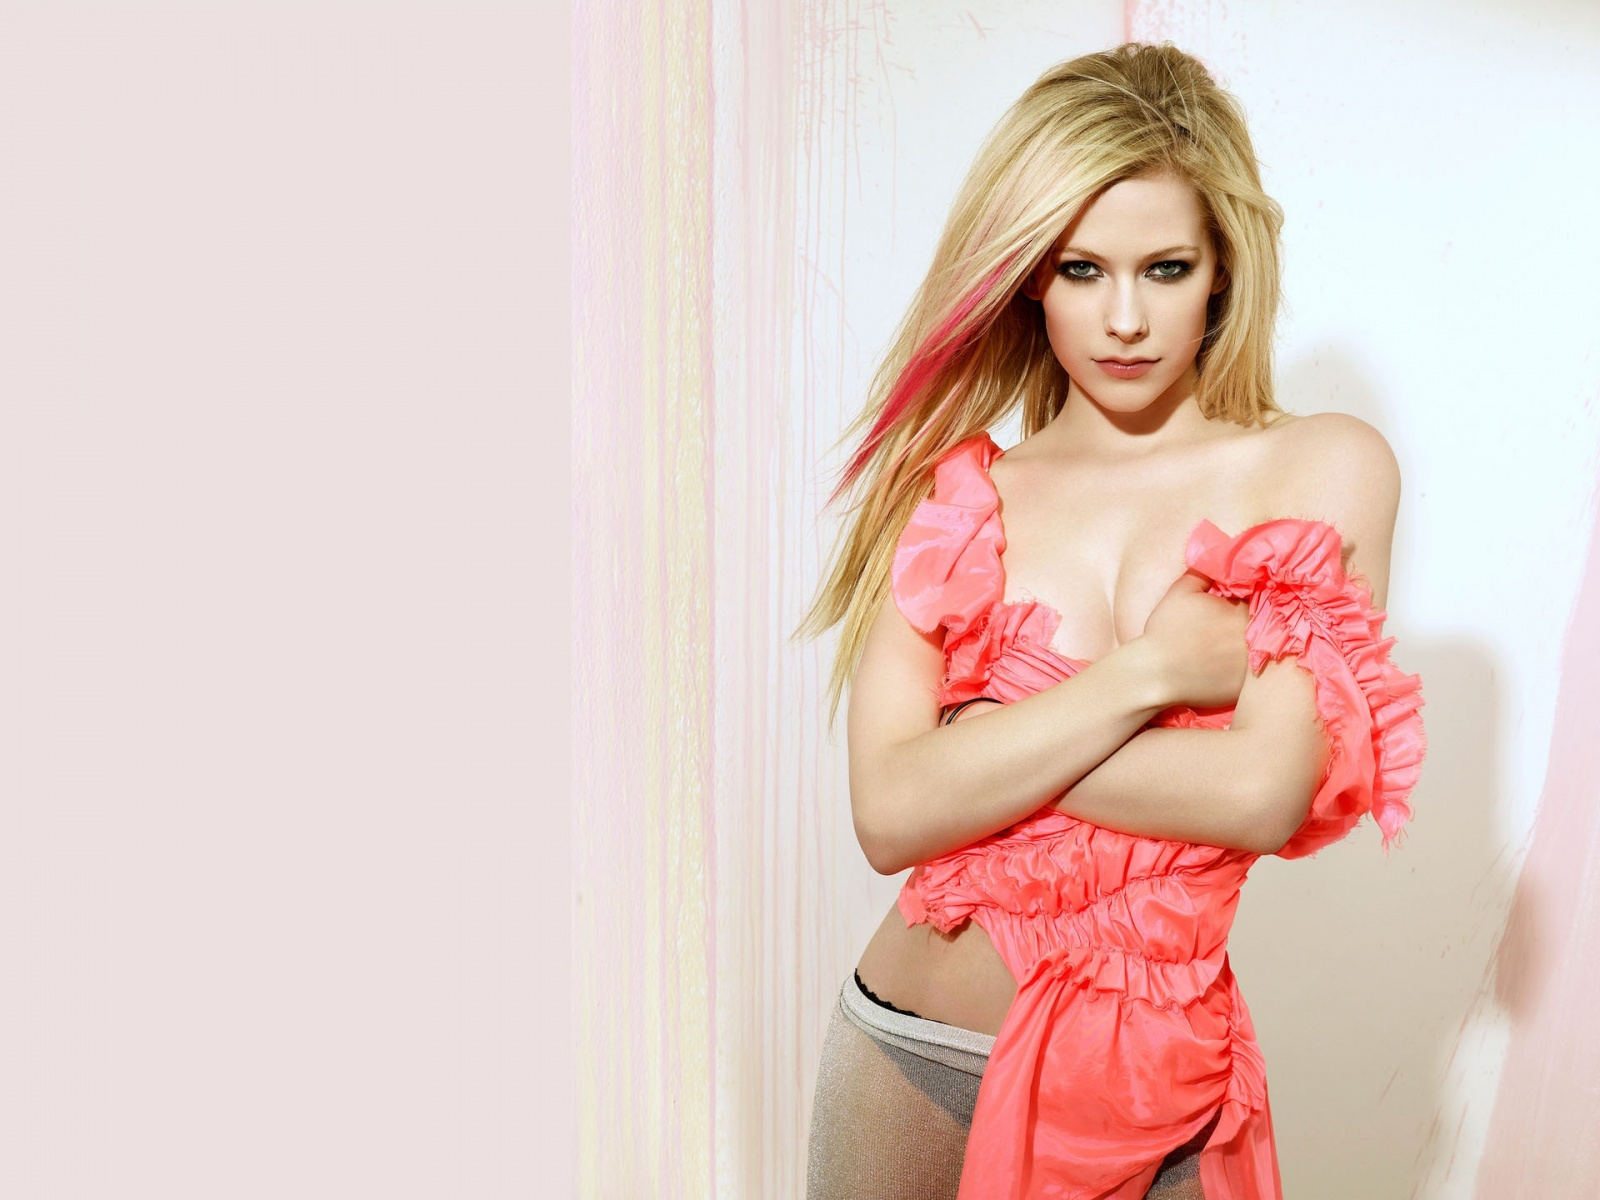 Avril Lavigne Peach Frill Dress And Black Panties With A See Through Sarong